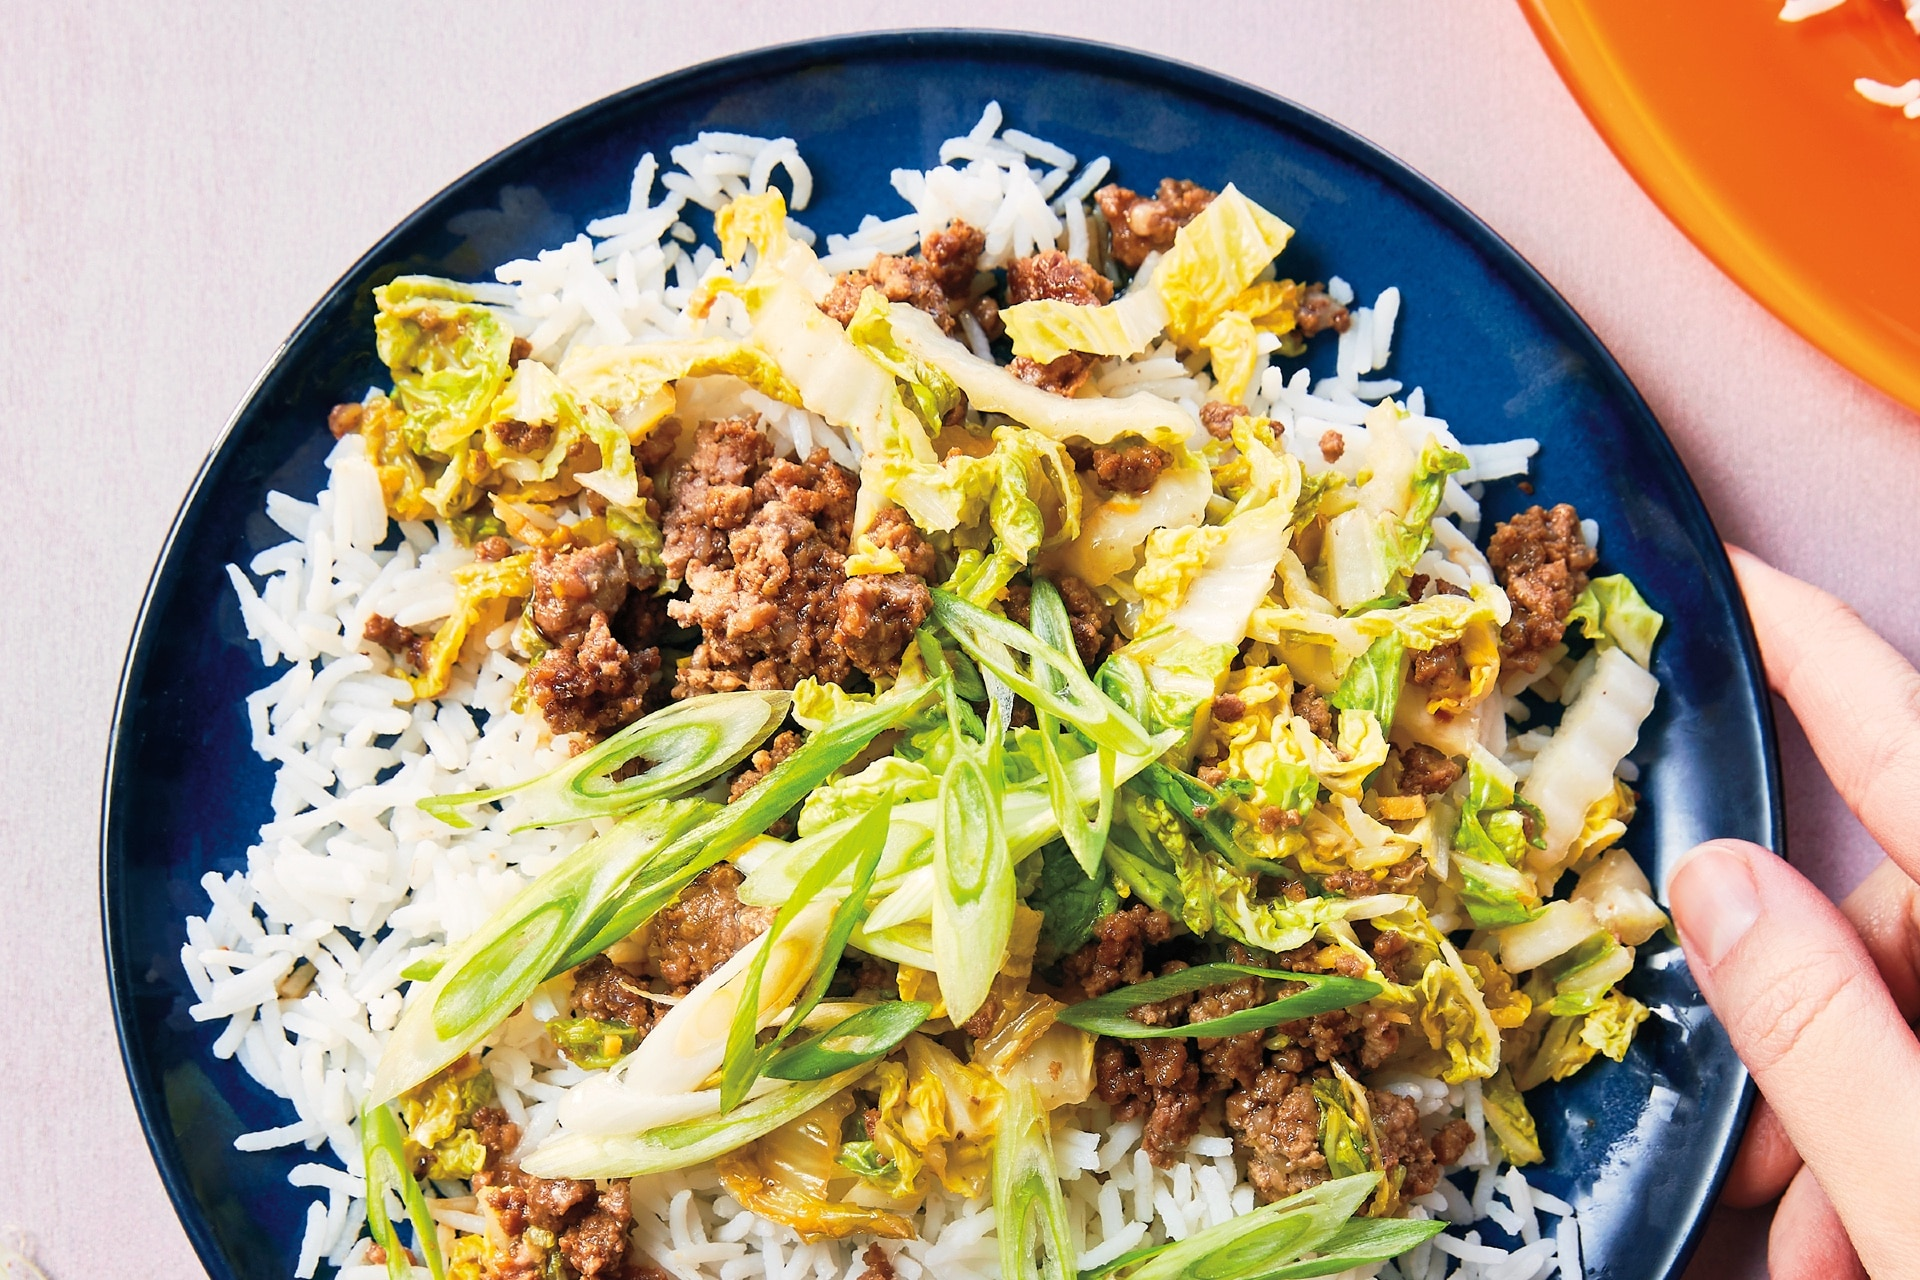 plate of ground beer and shredded cabbage over rice